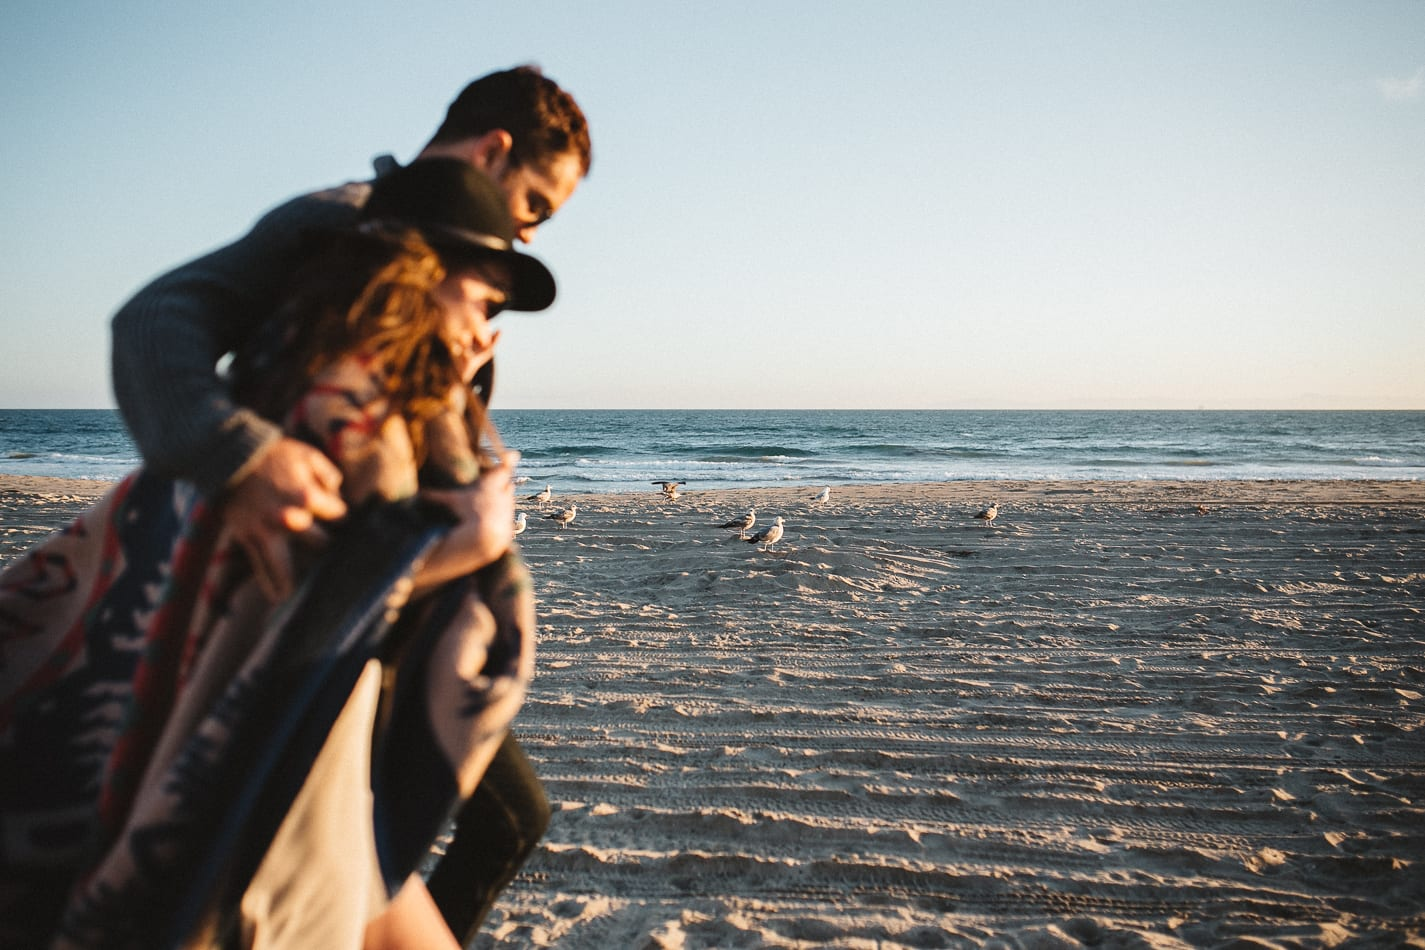 jason-alyssa-huntington-beach-california-engagement-photographer-2